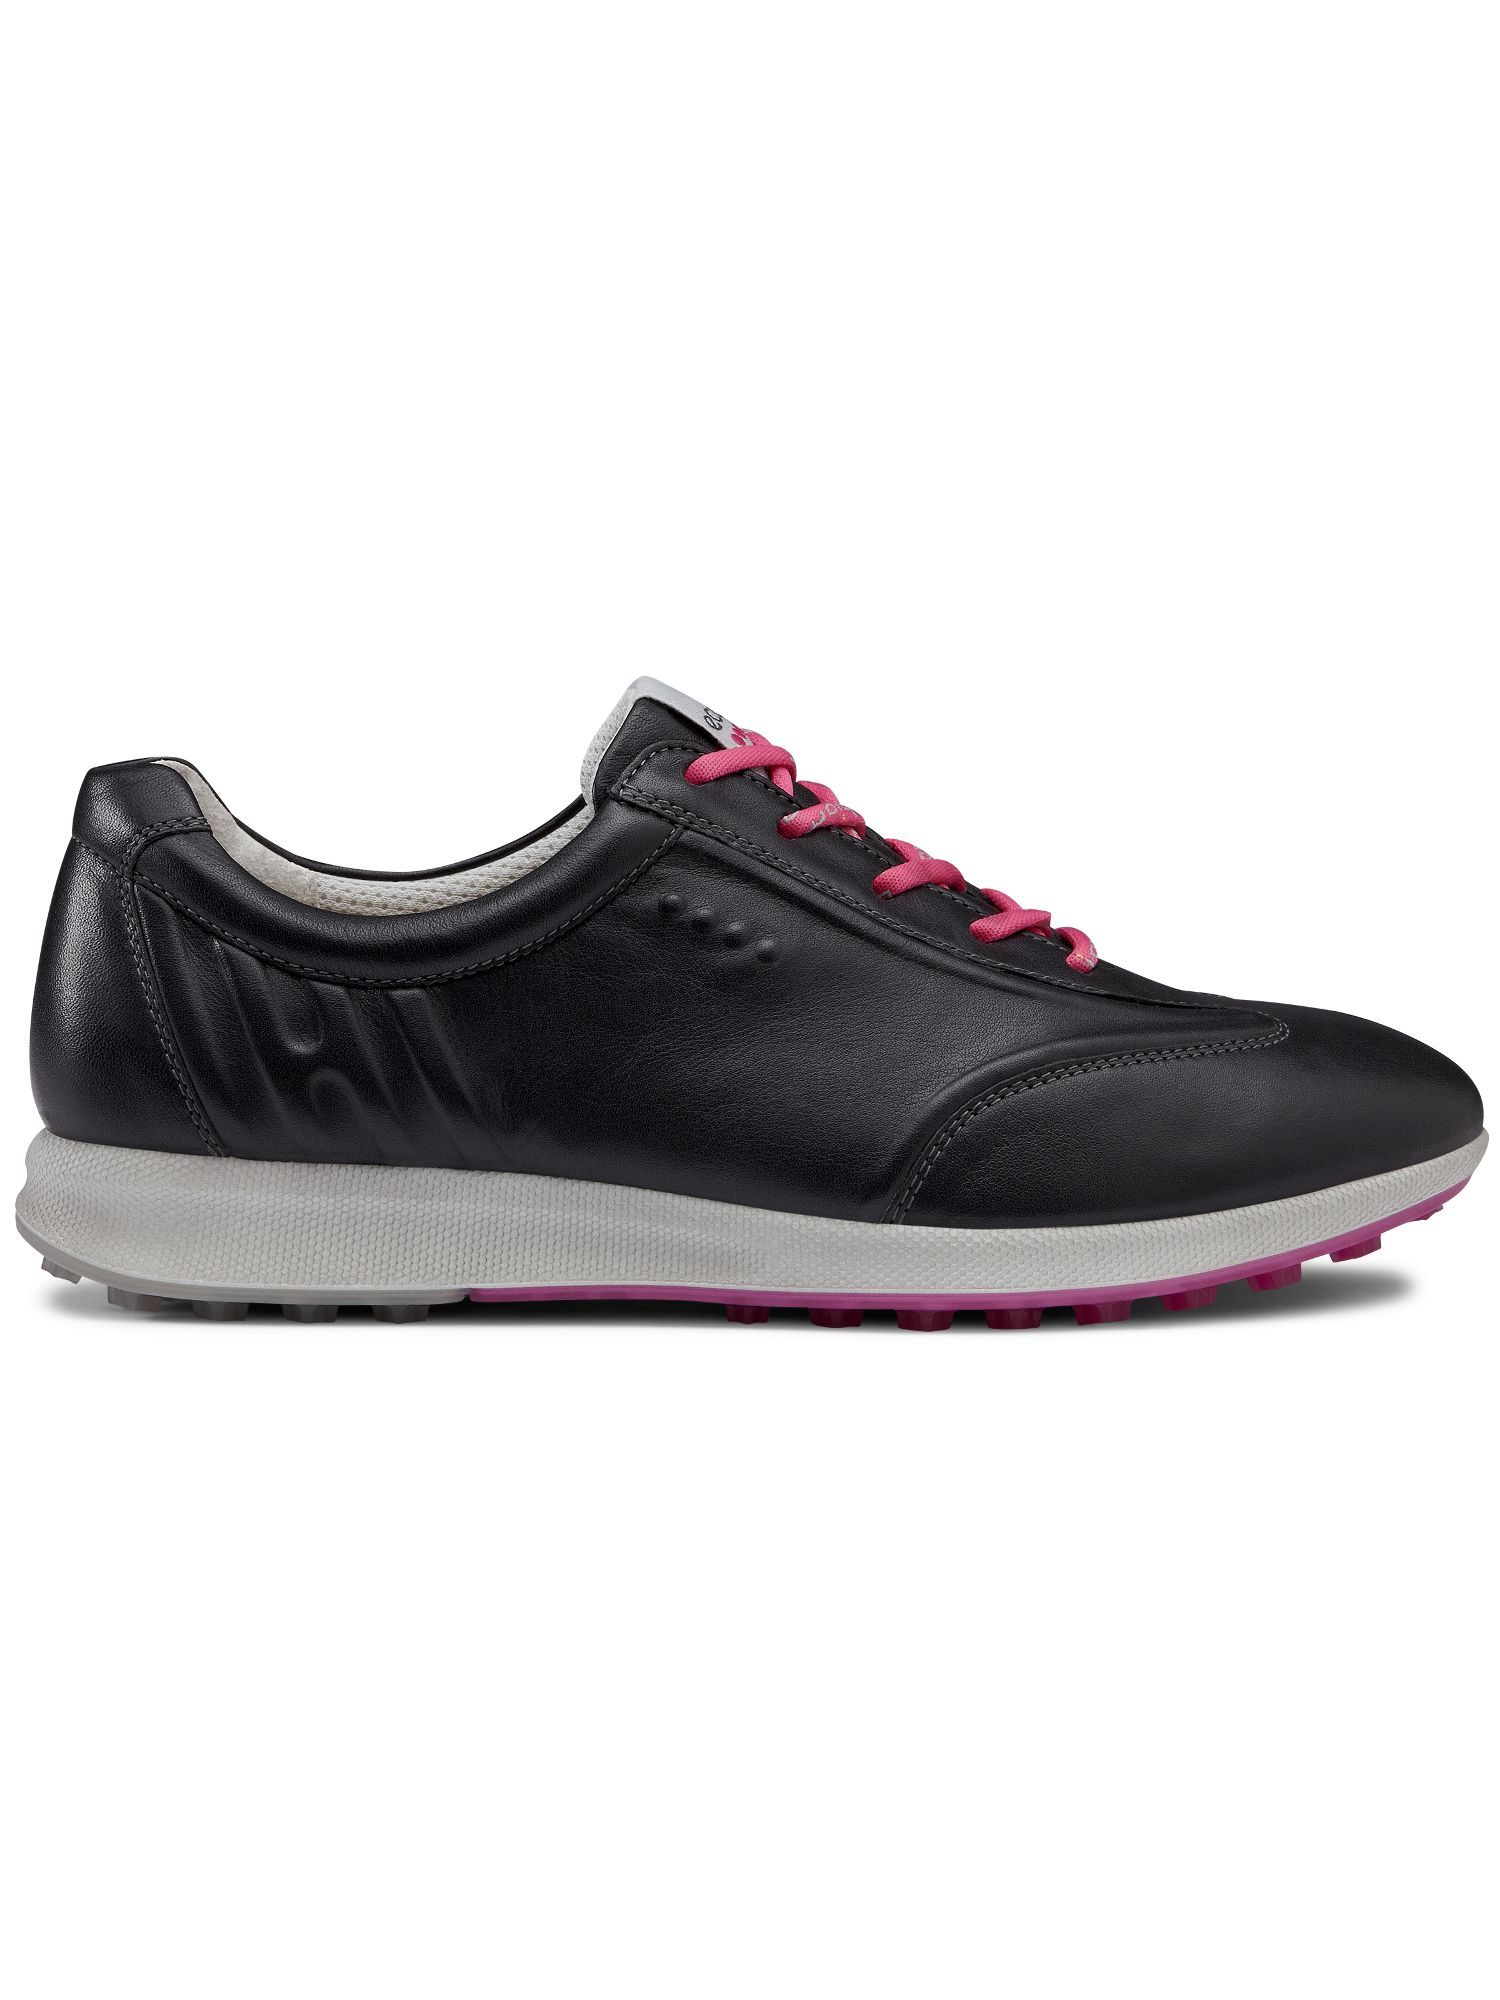 Street evo golf shoes